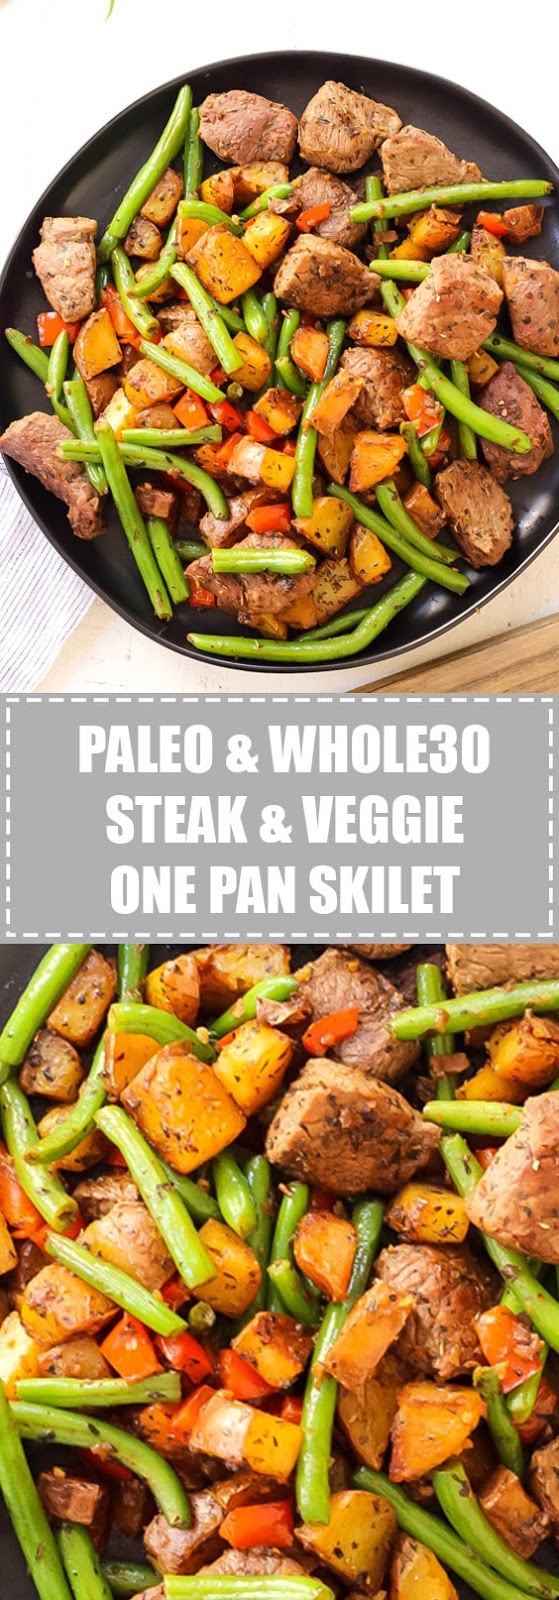 Whole30 Steak and Vegetable Skillet Paleo One Pan Meal